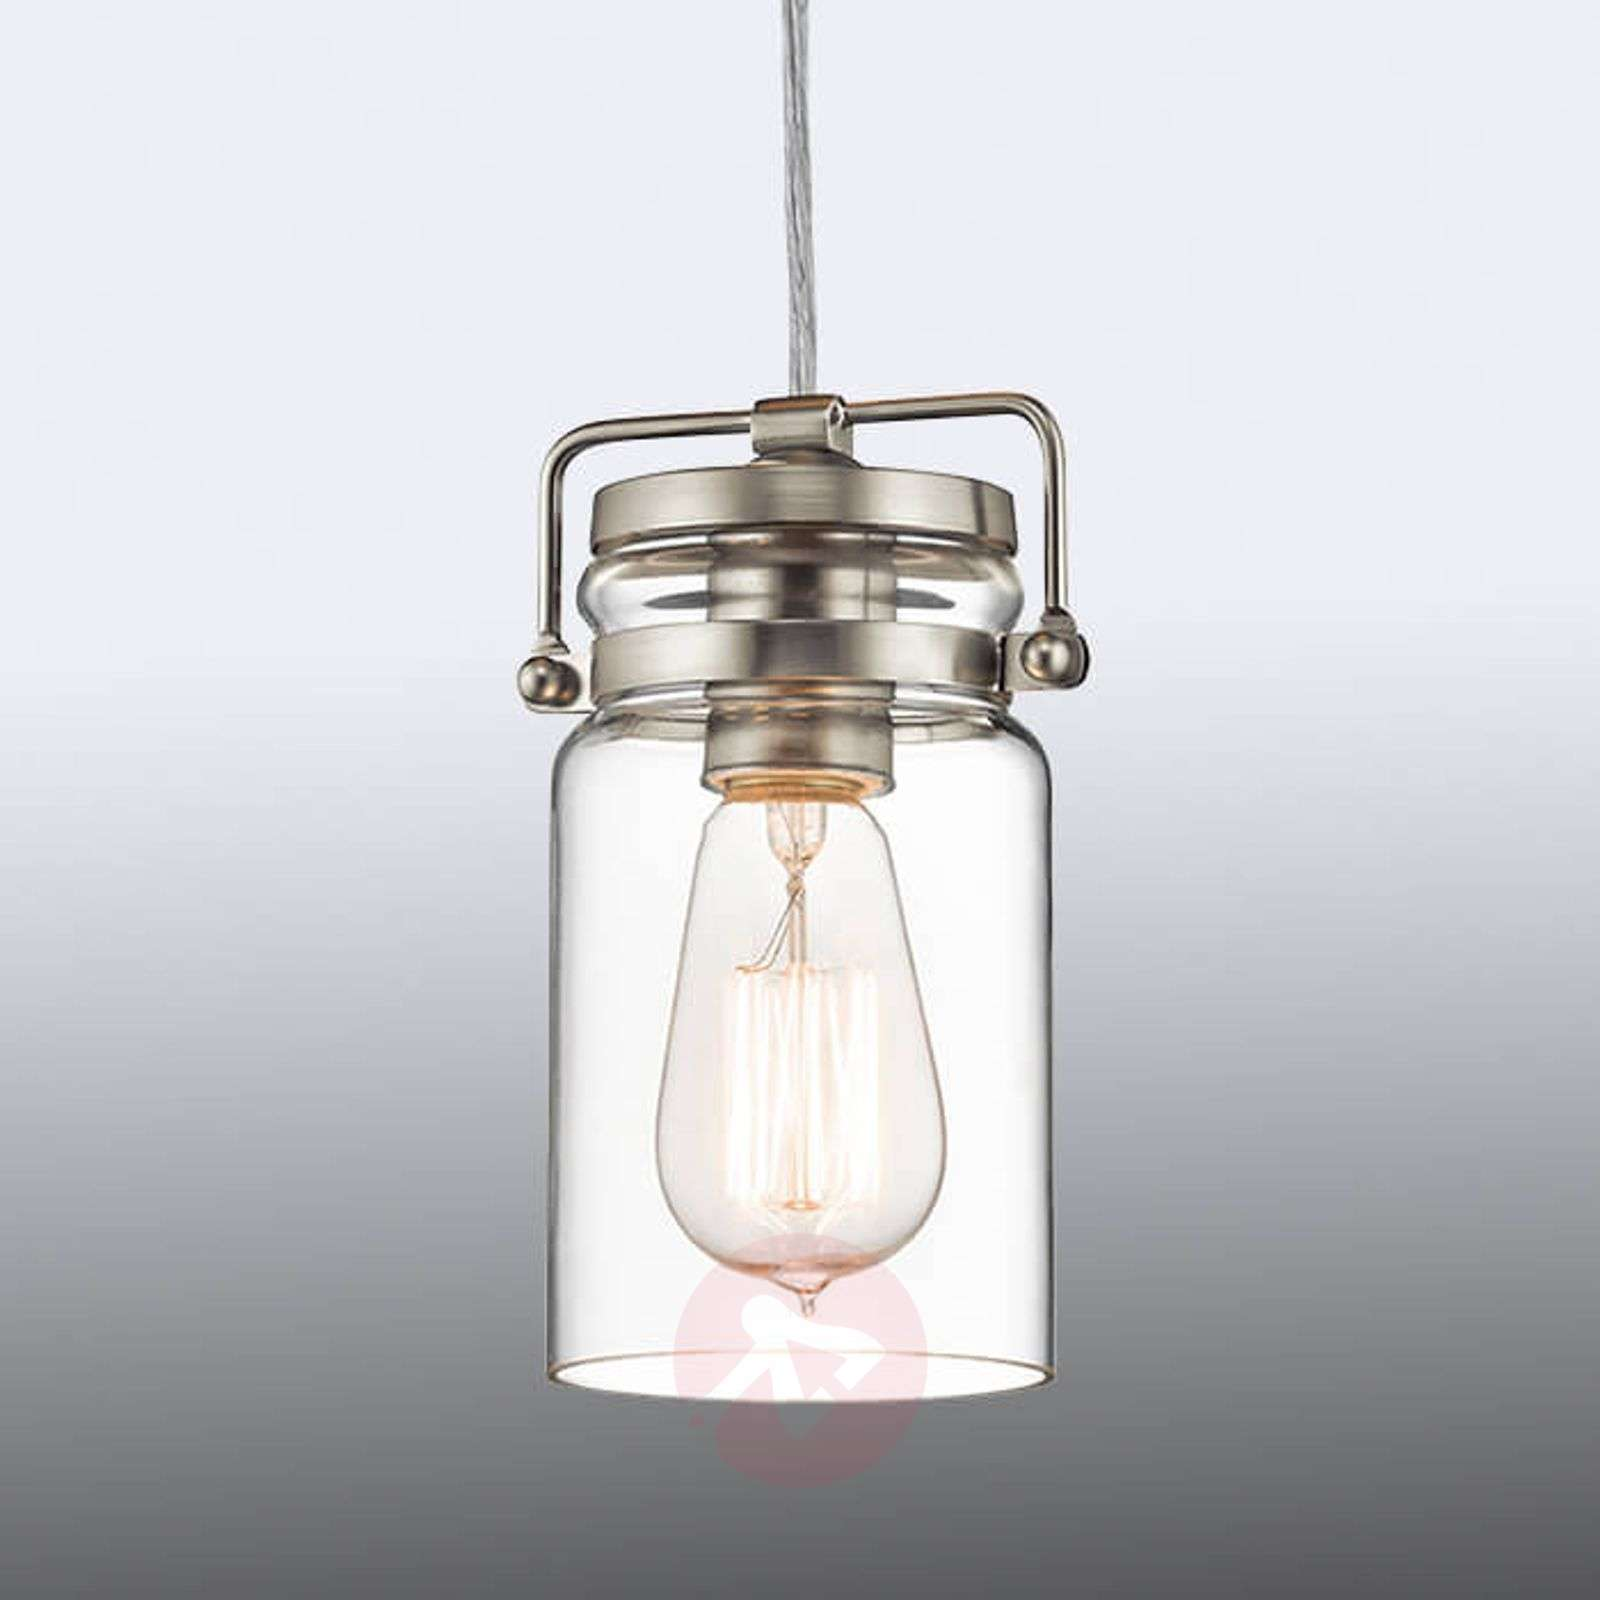 Contemporary hanging light Brinley, retro style-3048731-01